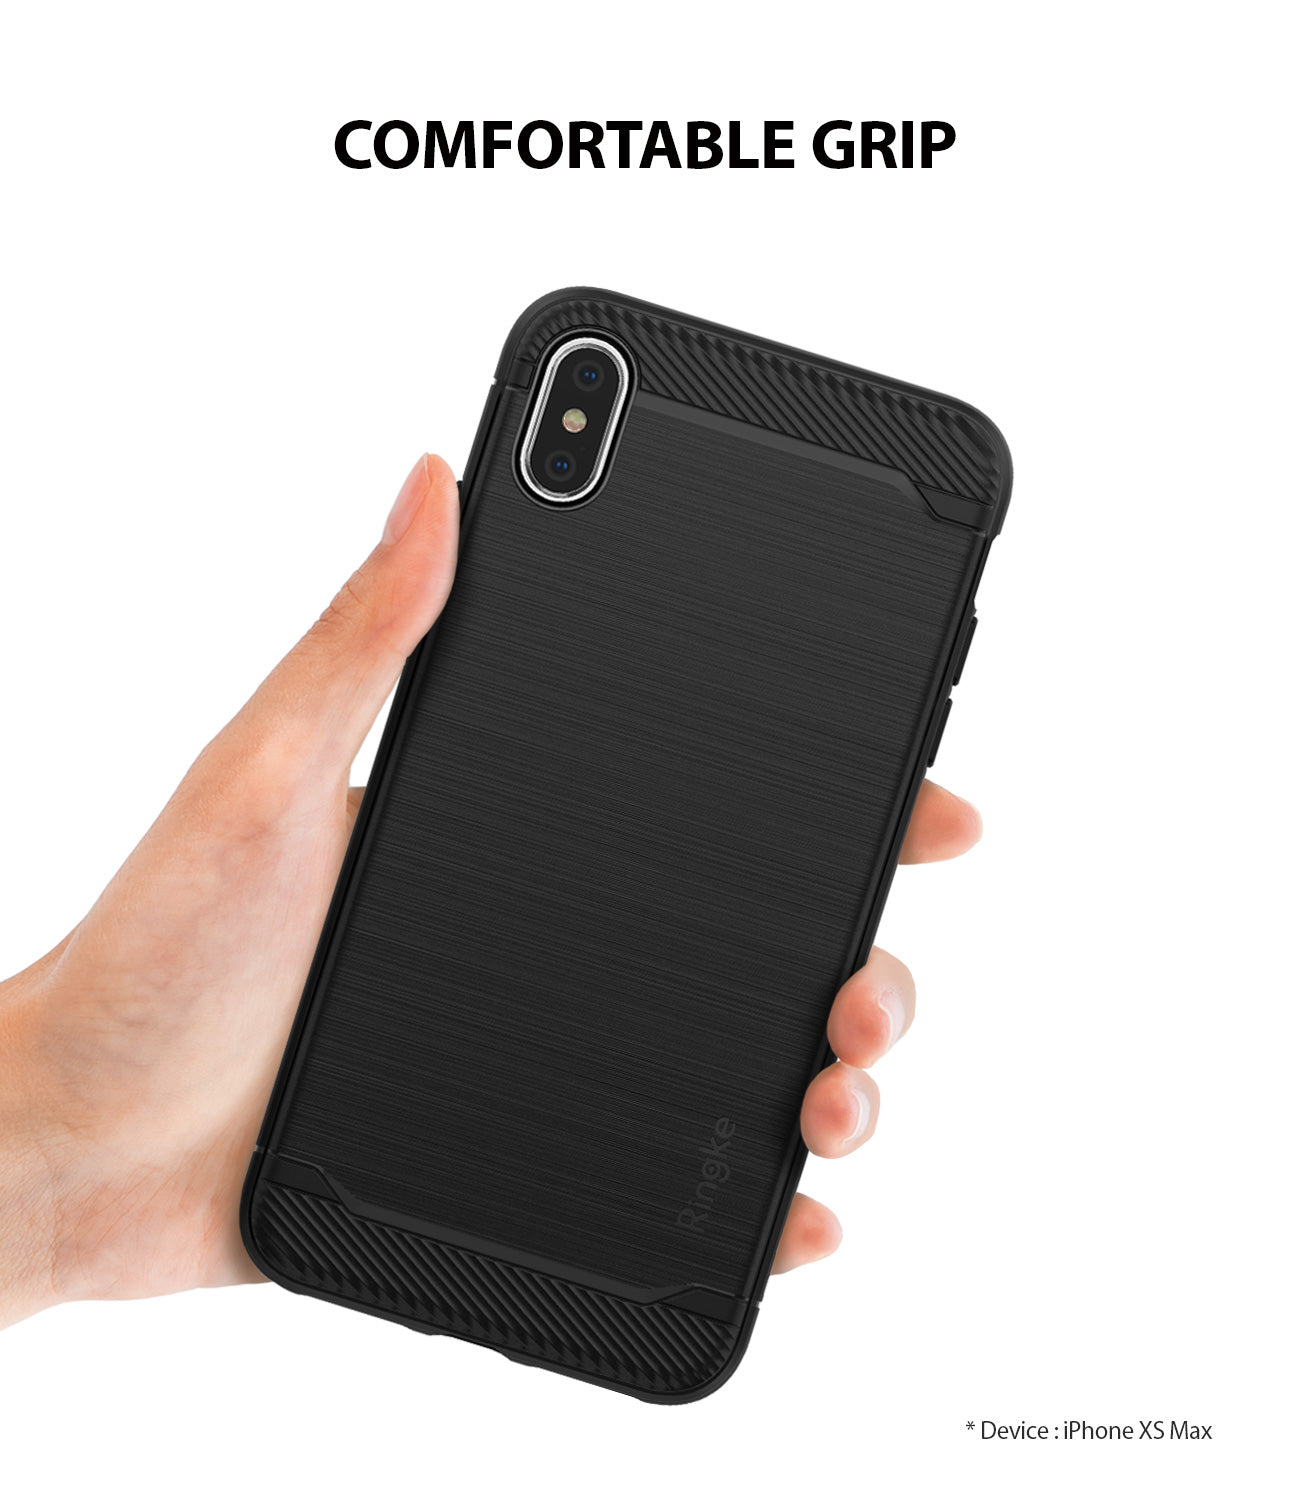 ringke onyx for apple iphone xs max case cover holding